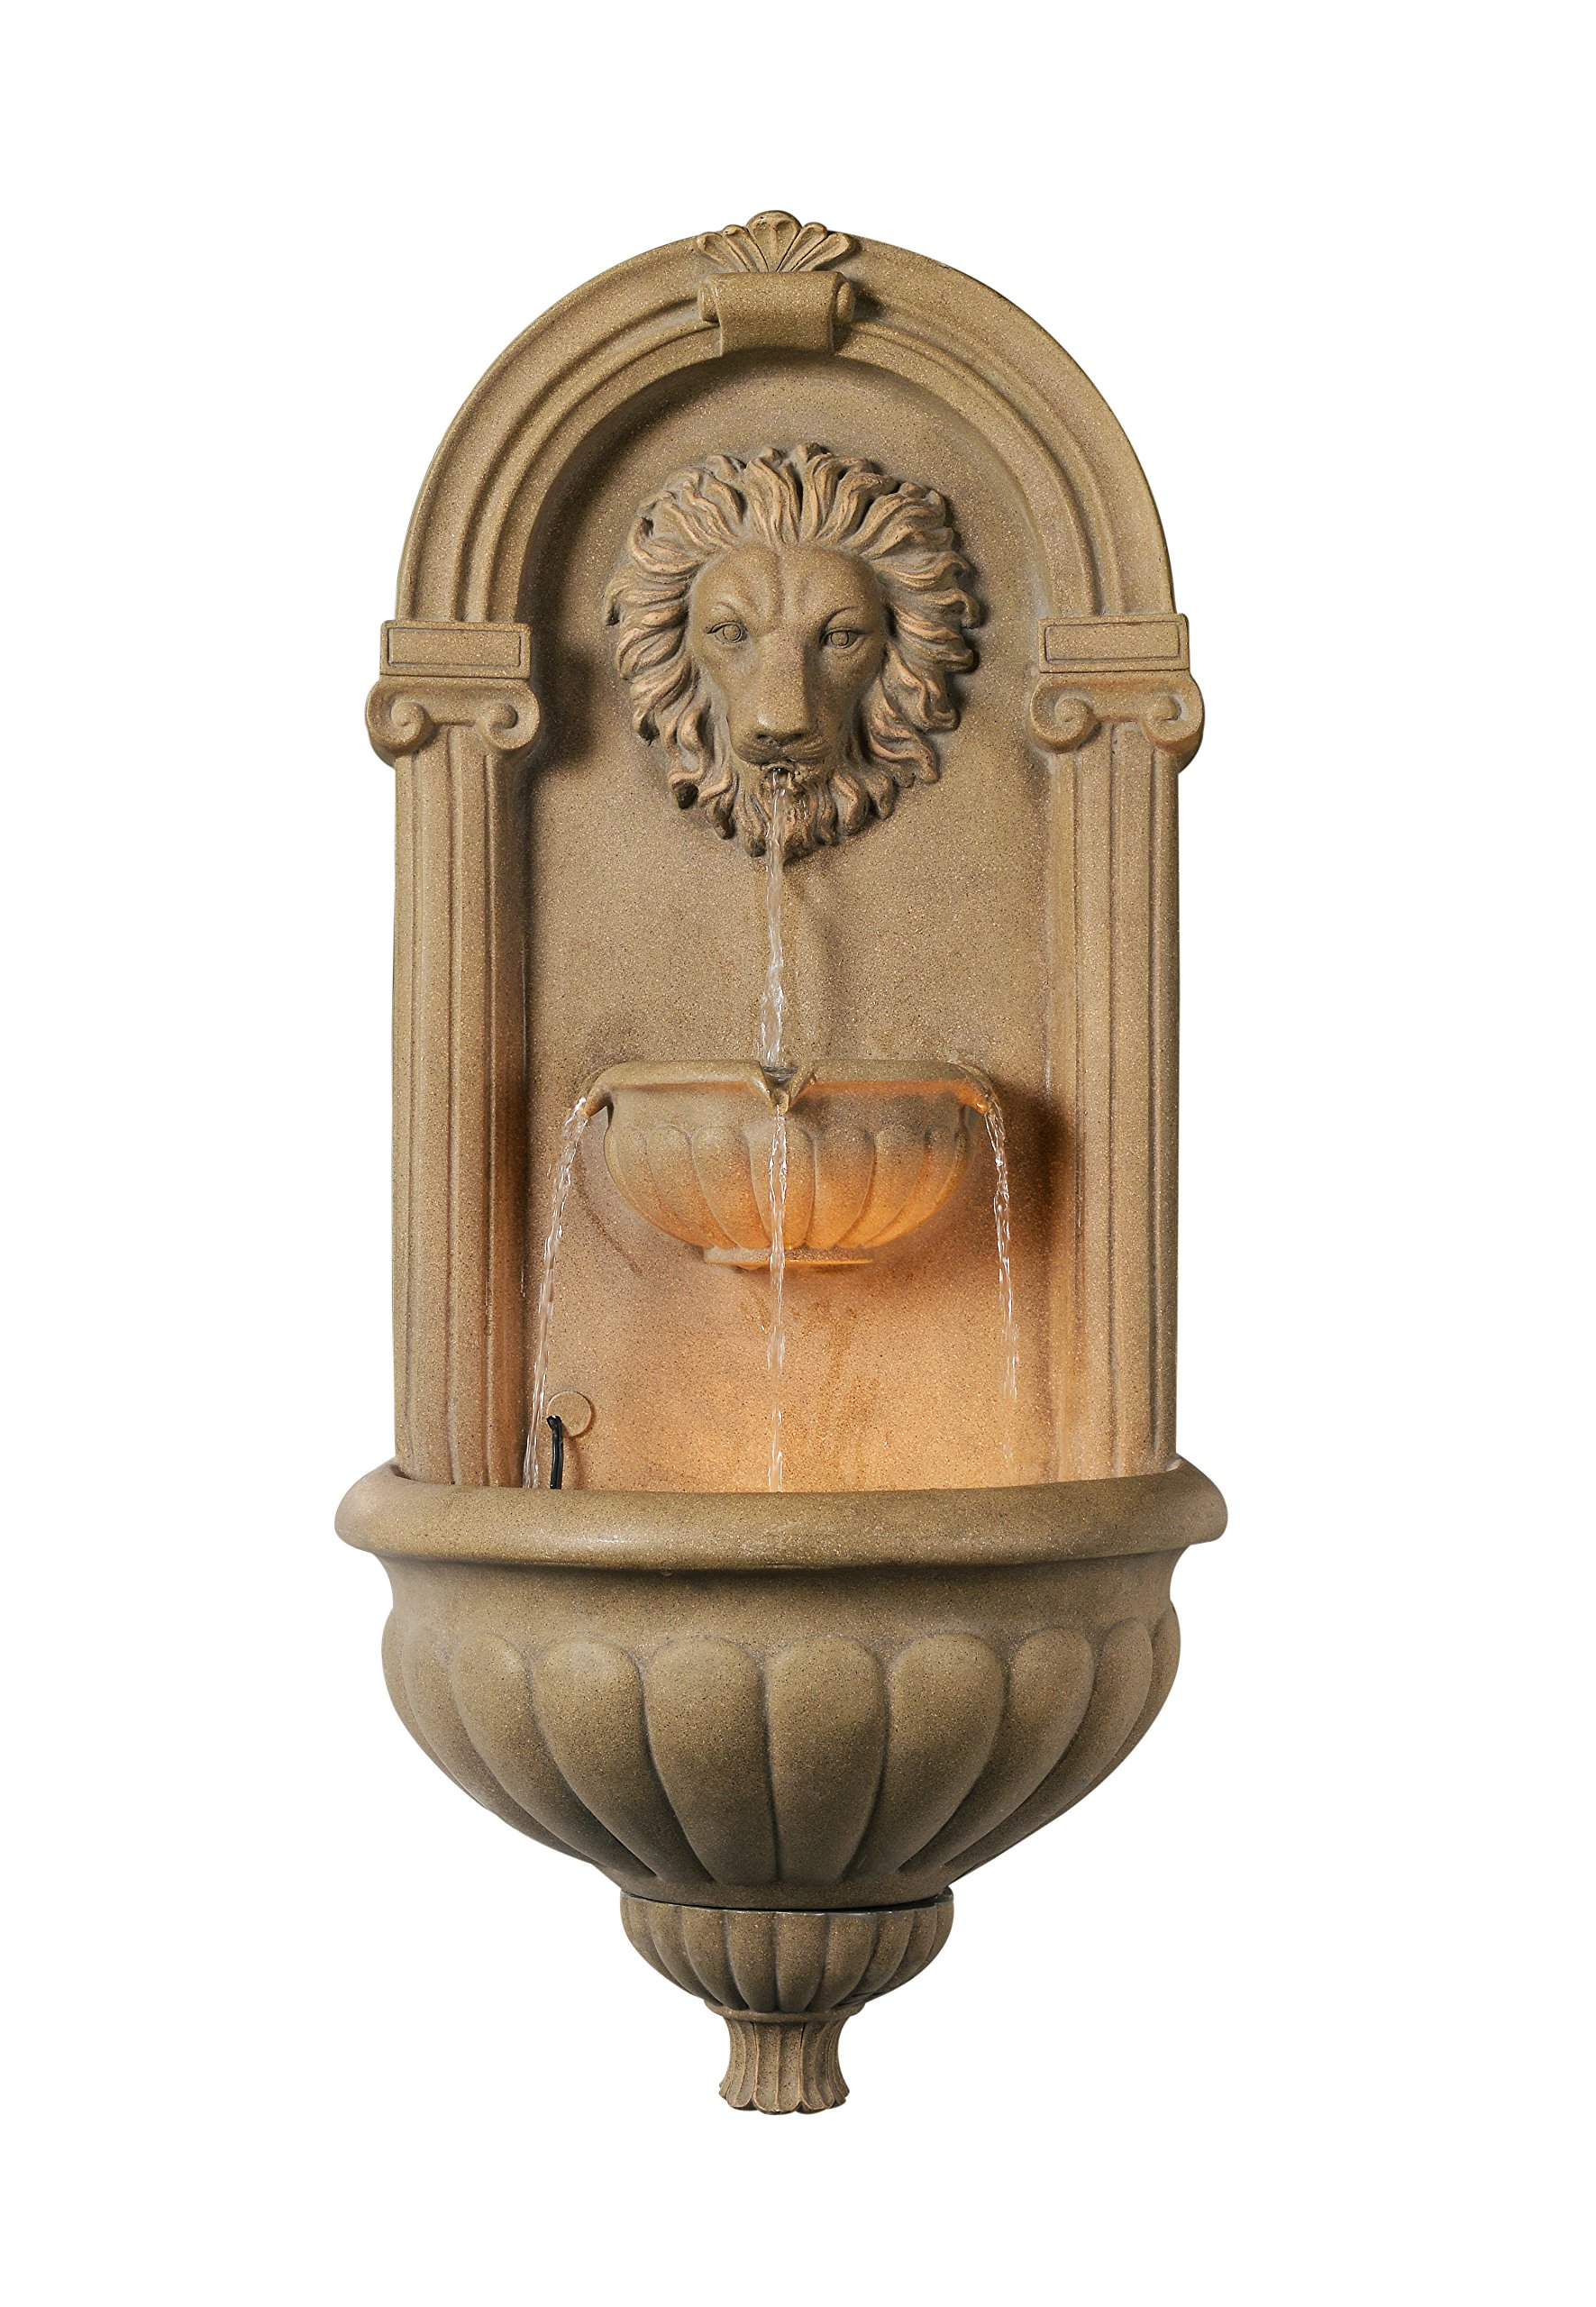 Kenroy Home 50026COQN Regal Wall Fountain, Coquina Finish by Kenroy Home